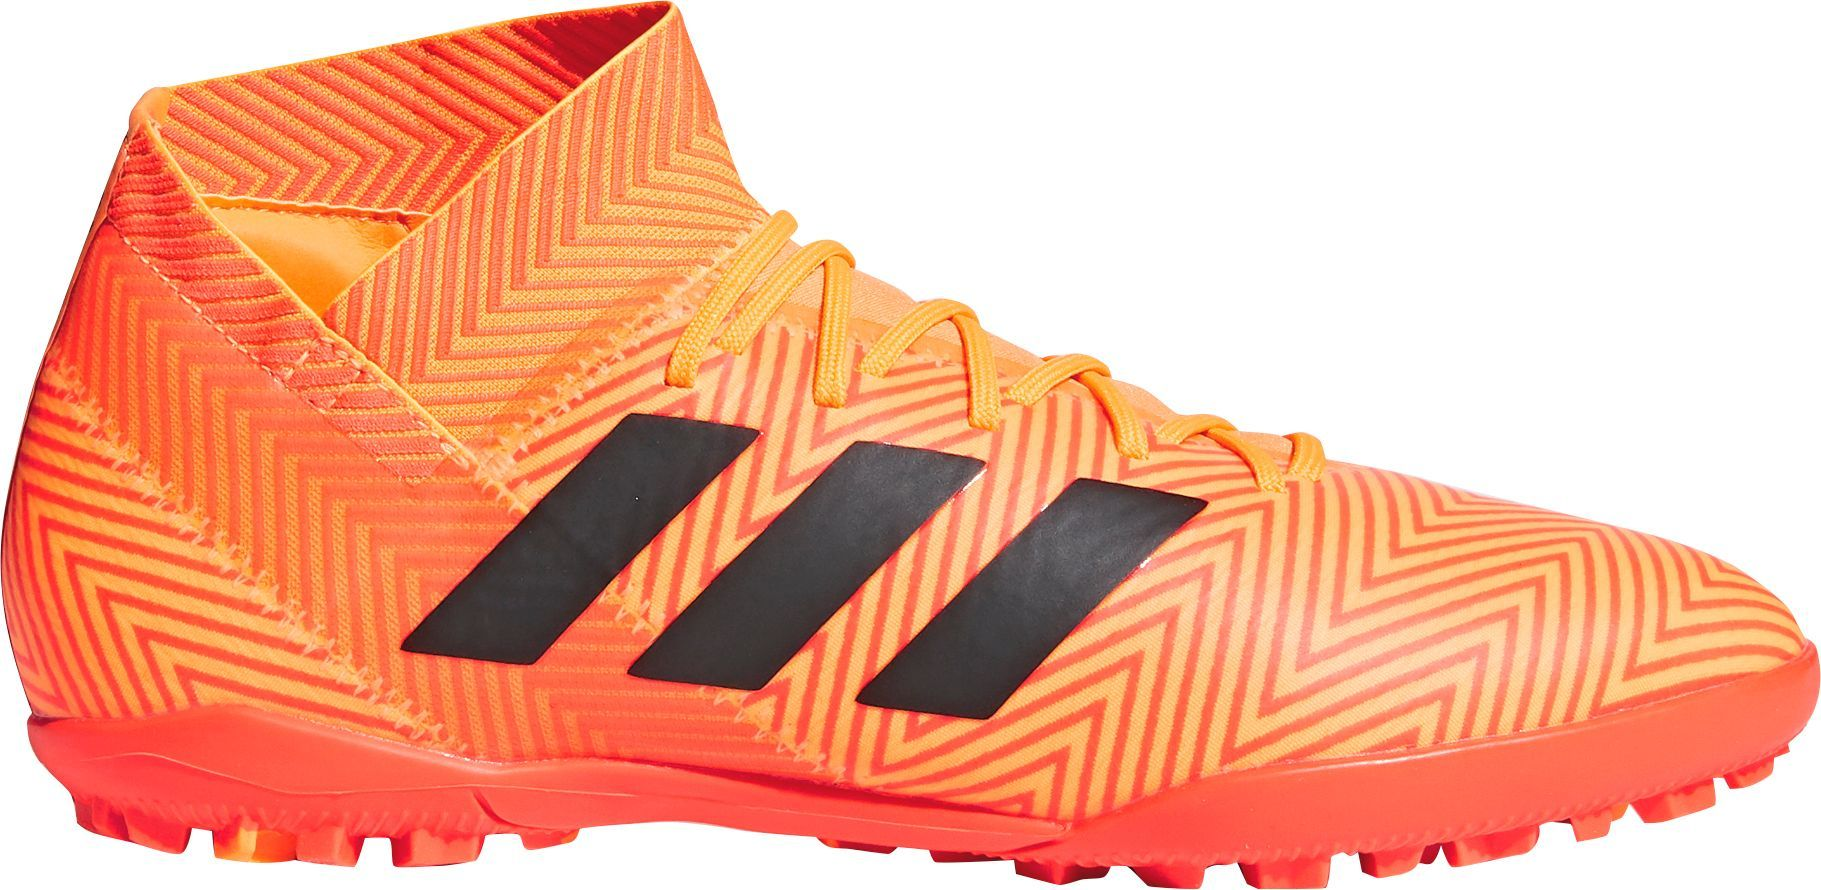 promo code 13e37 007cd adidas Men s Nemeziz Tango 18.3 Turf Soccer Cleats, Size  13.0, Orange